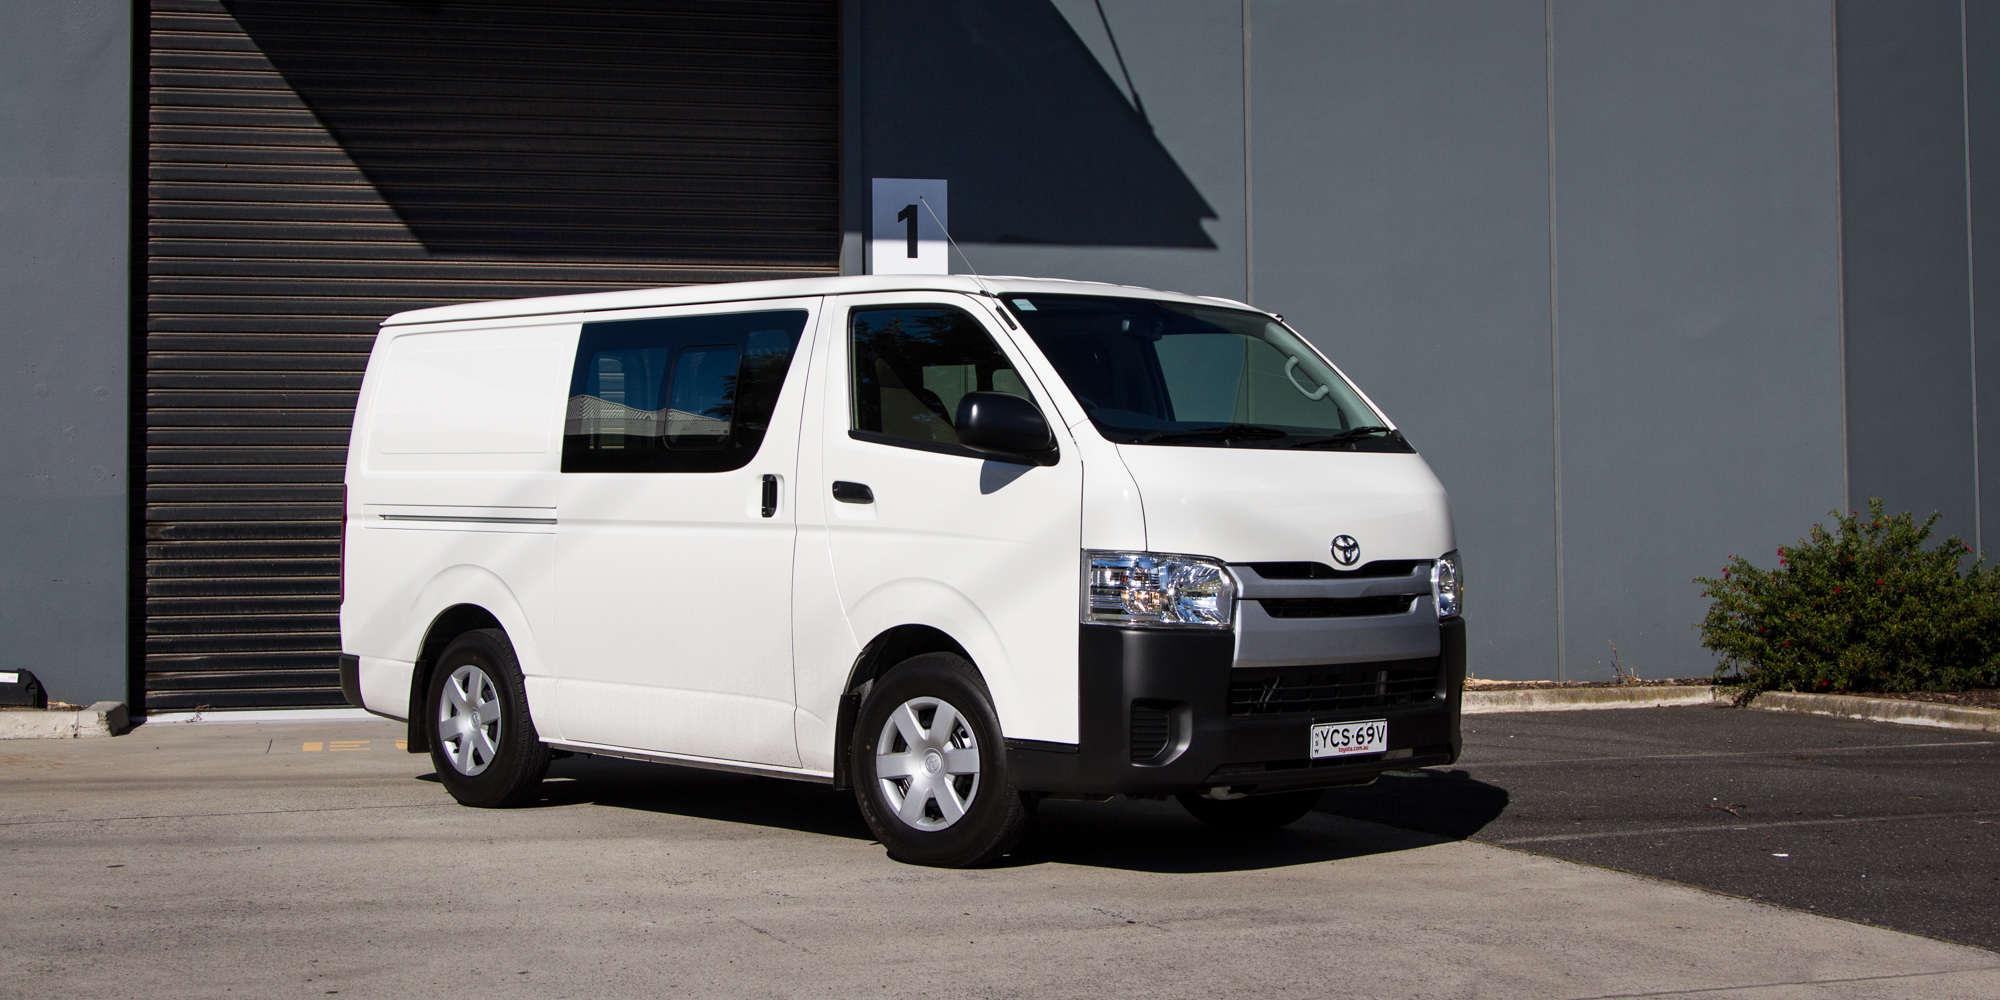 Ford Cargo Van For Sale >> 2015 Toyota HiAce Crew Van Review | CarAdvice